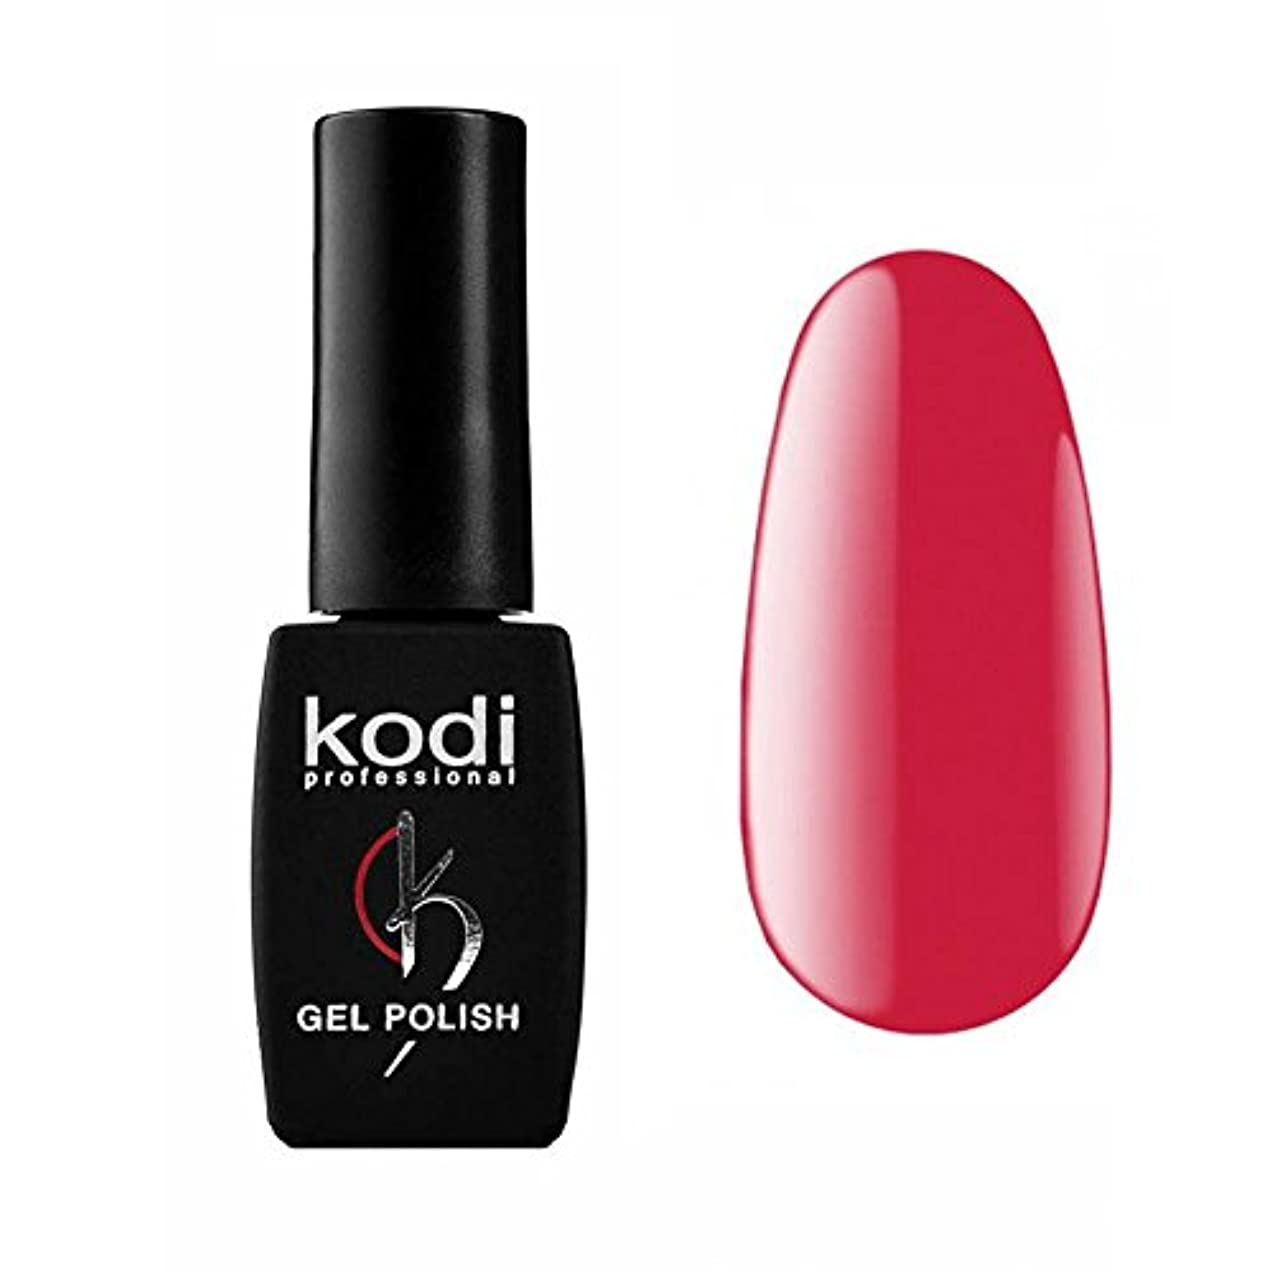 付添人介入する活性化Kodi Professional New Collection P Pink #120 Color Gel Nail Polish 12ml 0.42 Fl Oz LED UV Genuine Soak Off